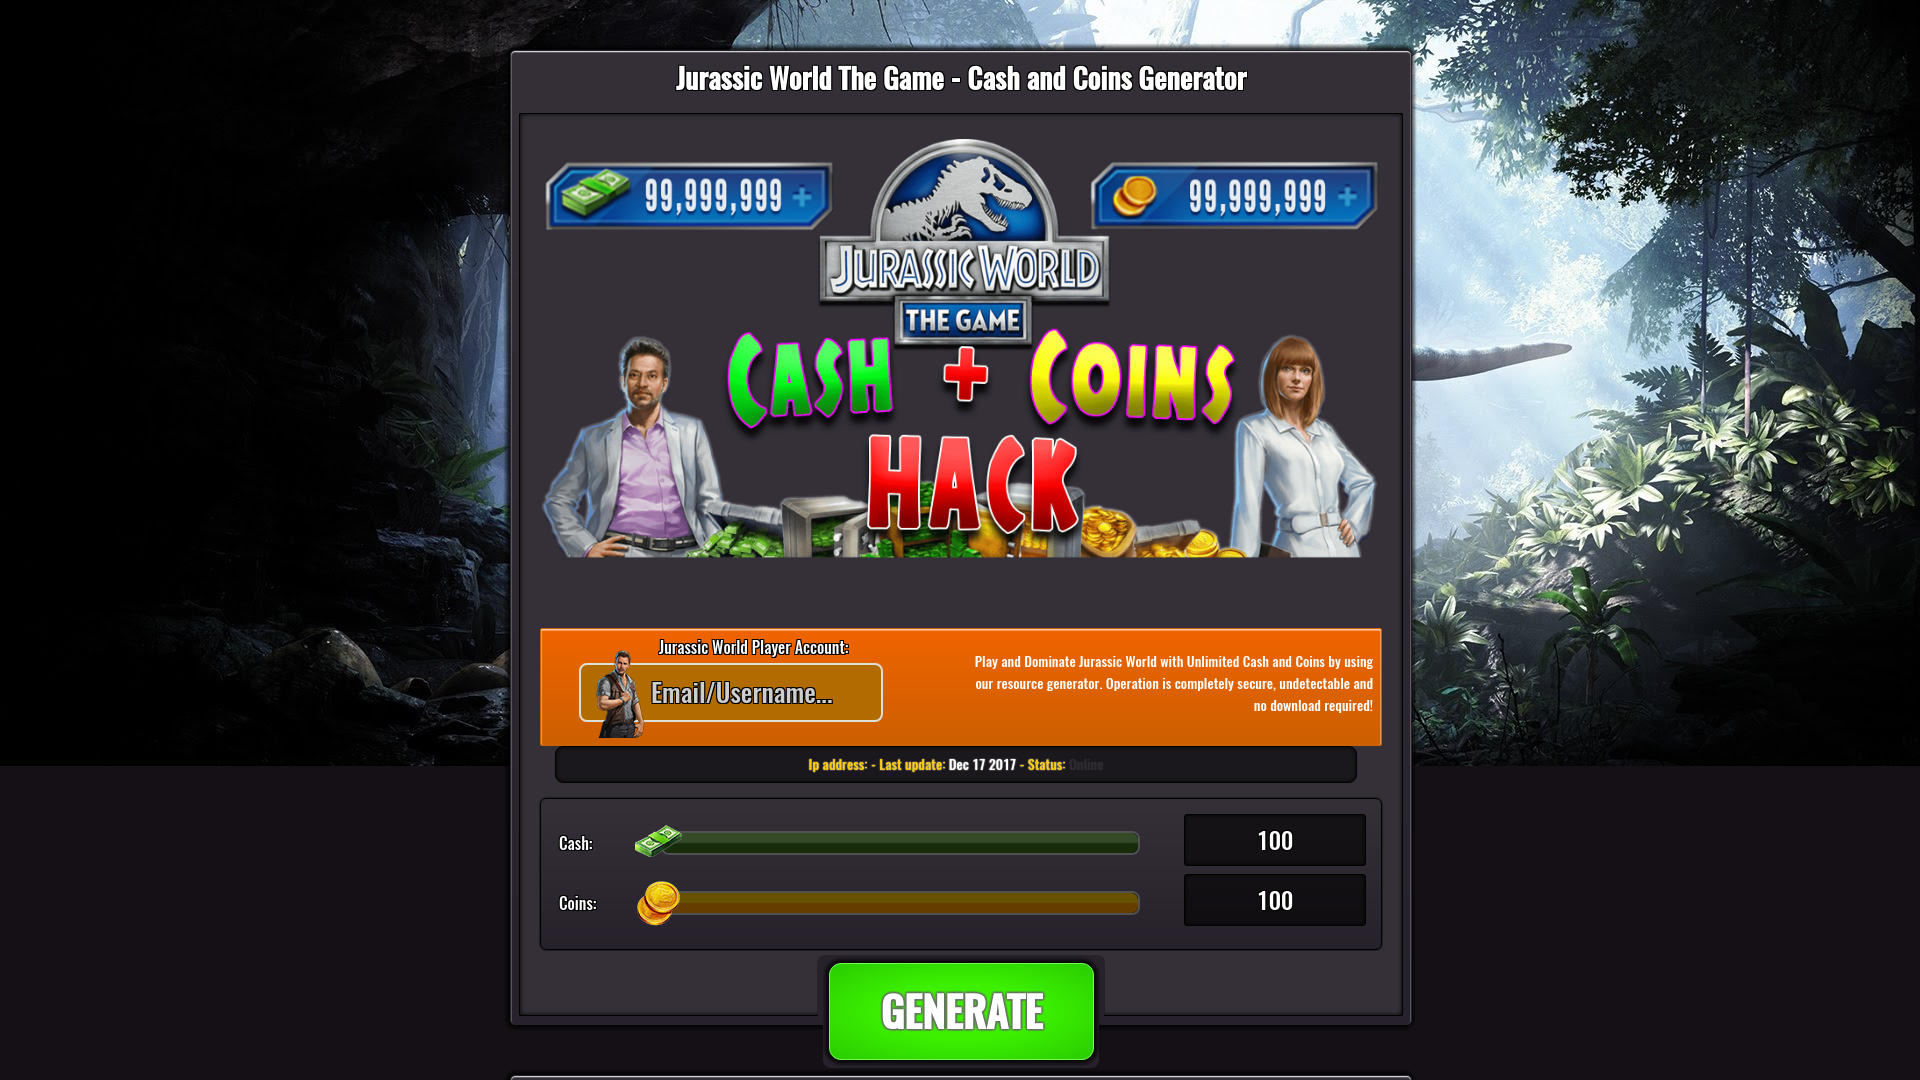 Jurassic World Mod Apk Jurassic World Evolution Cheats Jurassic World The Game Hack Jurassic World Ha Jurassic World World Mobile Lego Jurassic World Dinosaurs